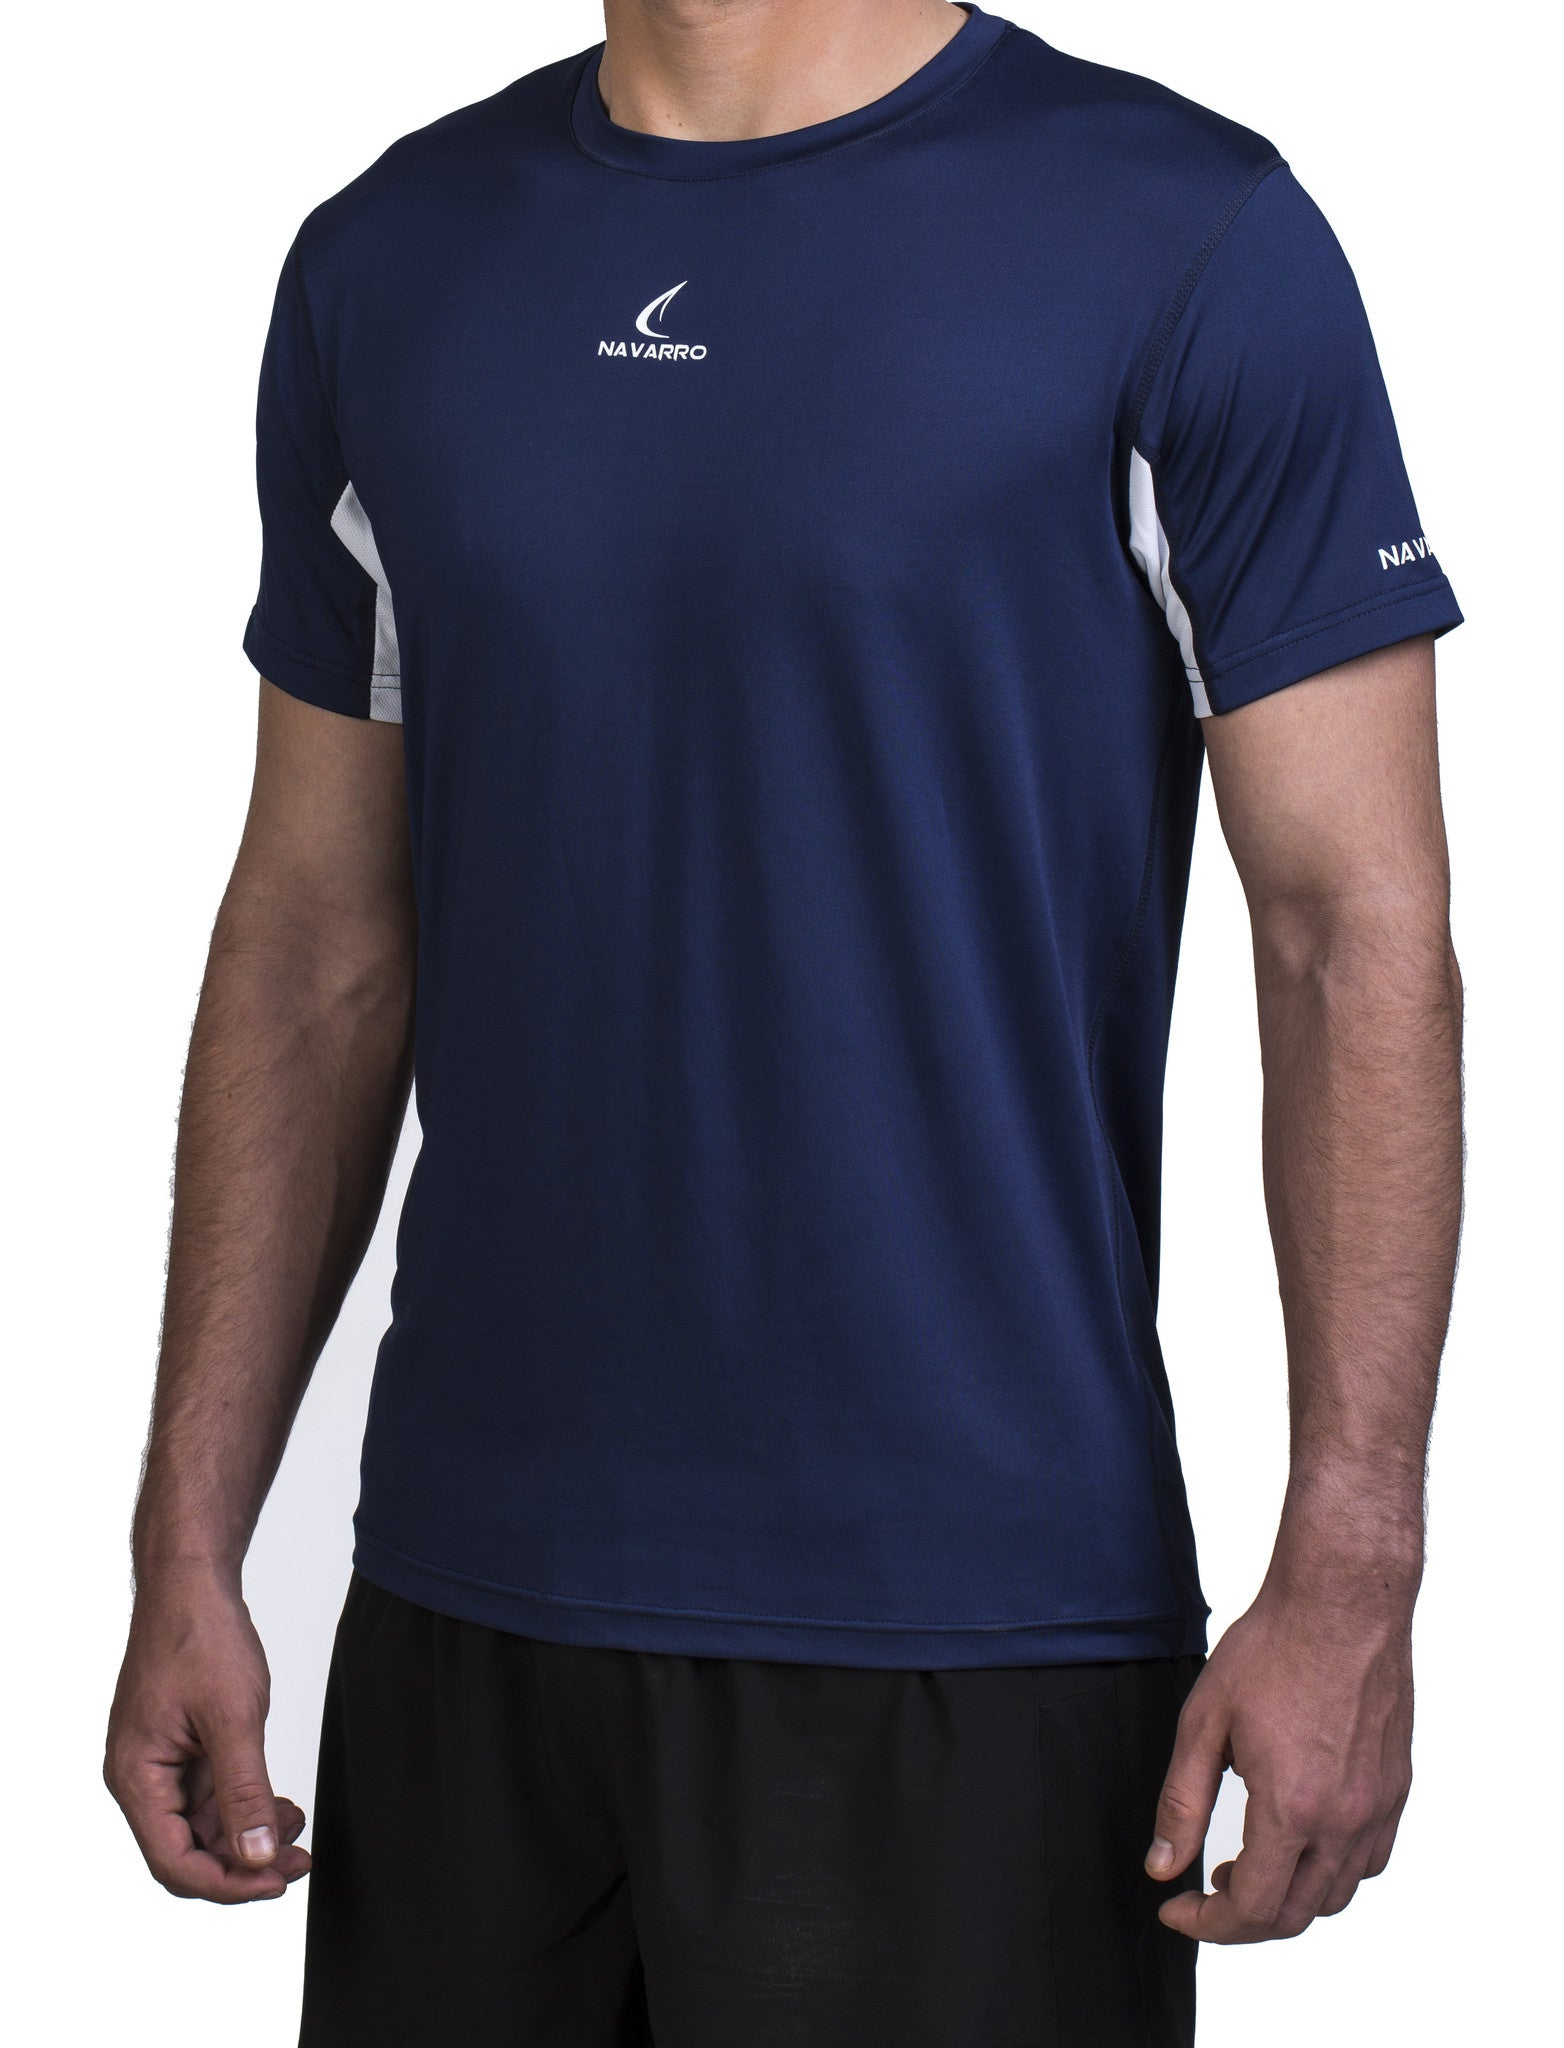 Men's M1 Running T-shirt Navy